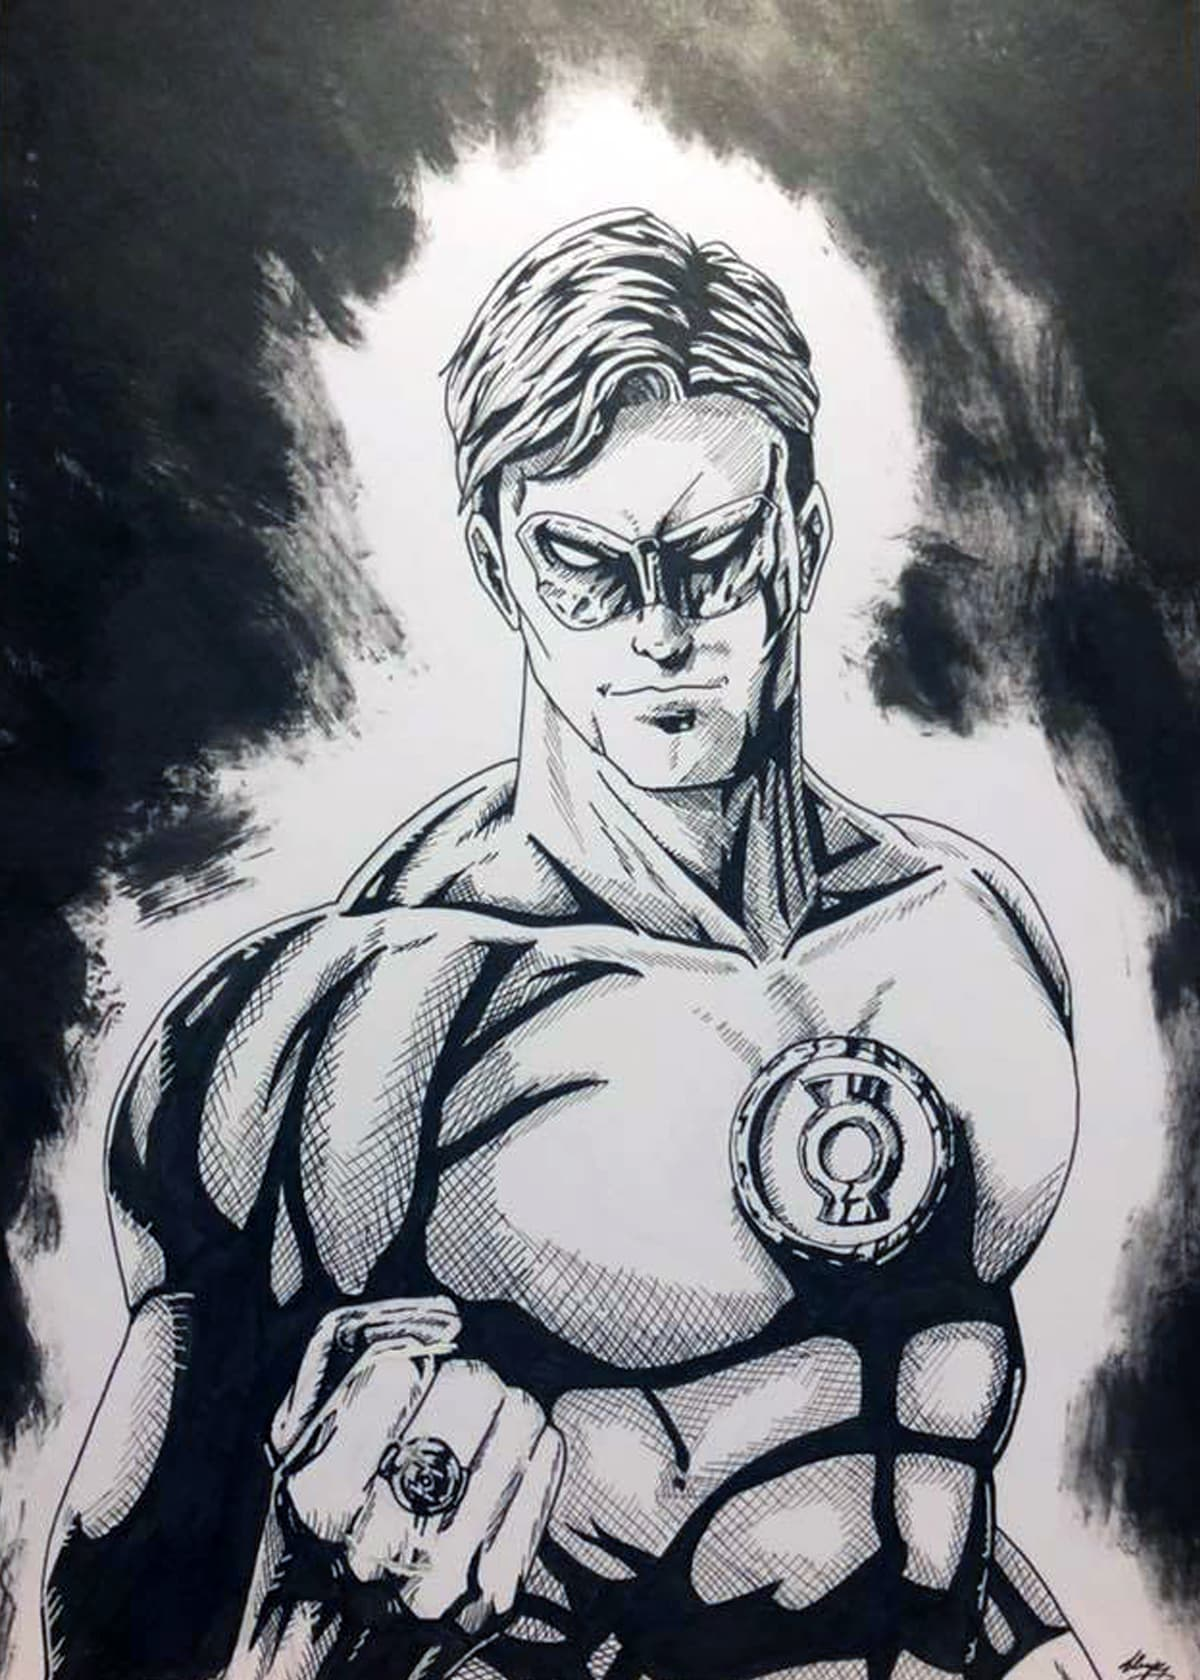 Green Lantern Hal Jordan Illustration Dempseyj Illustrations